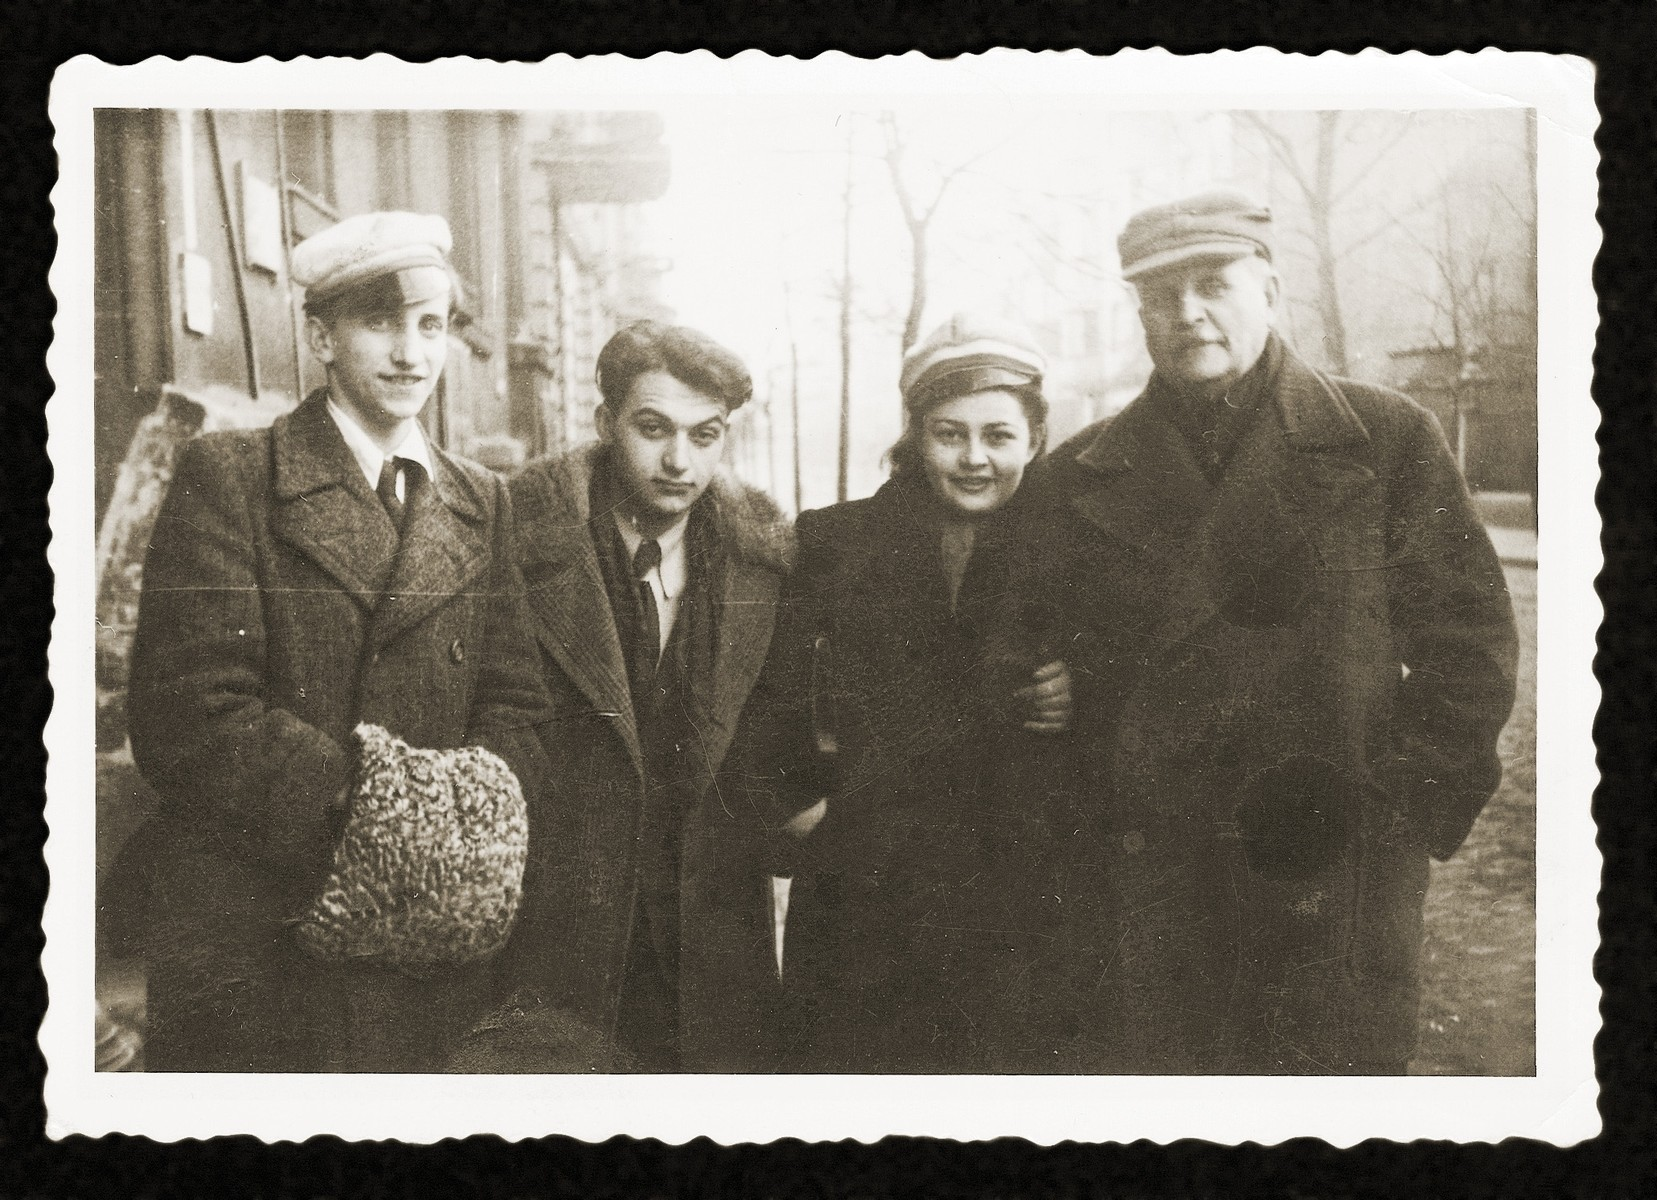 Gina Tabaczynska poses with two friends and the Pole who protected her while she was living in hiding in Warsaw.    PIctured from left to right are: Adam Los, Misza (Janis) Janiszewski, Gina Tabaczynska and Aleksander Pawlowski.